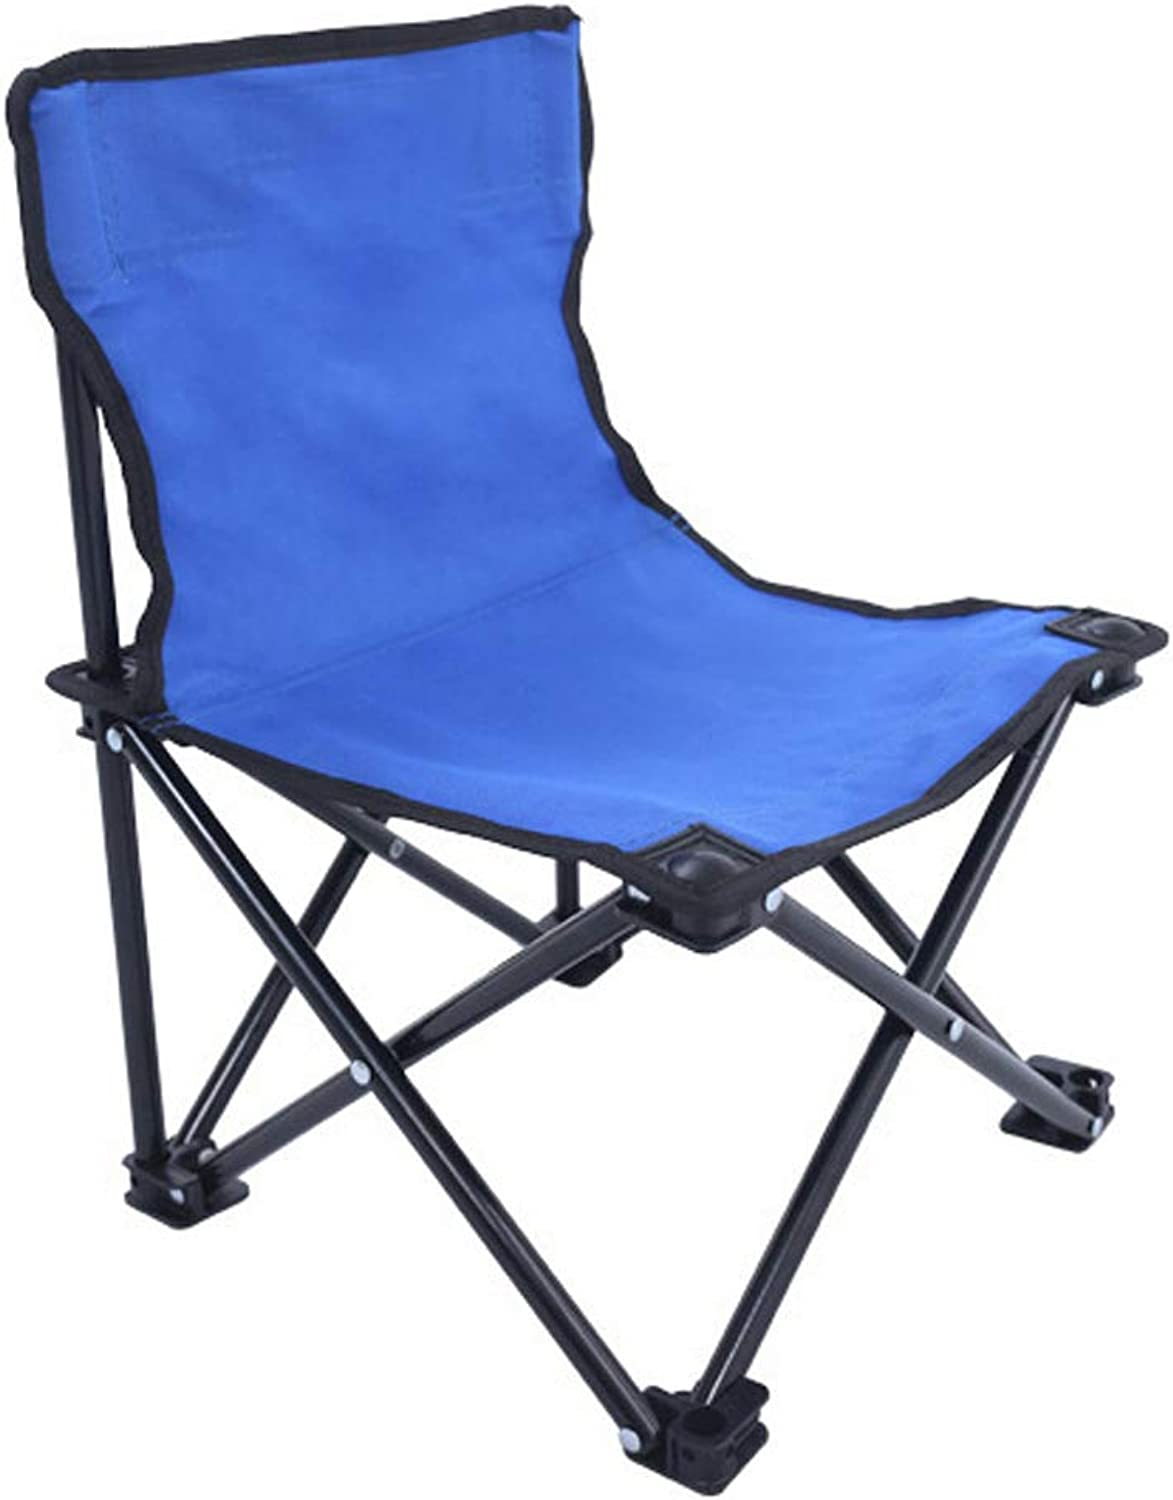 L- Small Camping Chair Lightweight Portable Folding Stool with Carry Bag for Mountaineering Adventure Hiking Fishing Beach Picnic Party Gardeningbluee Stable